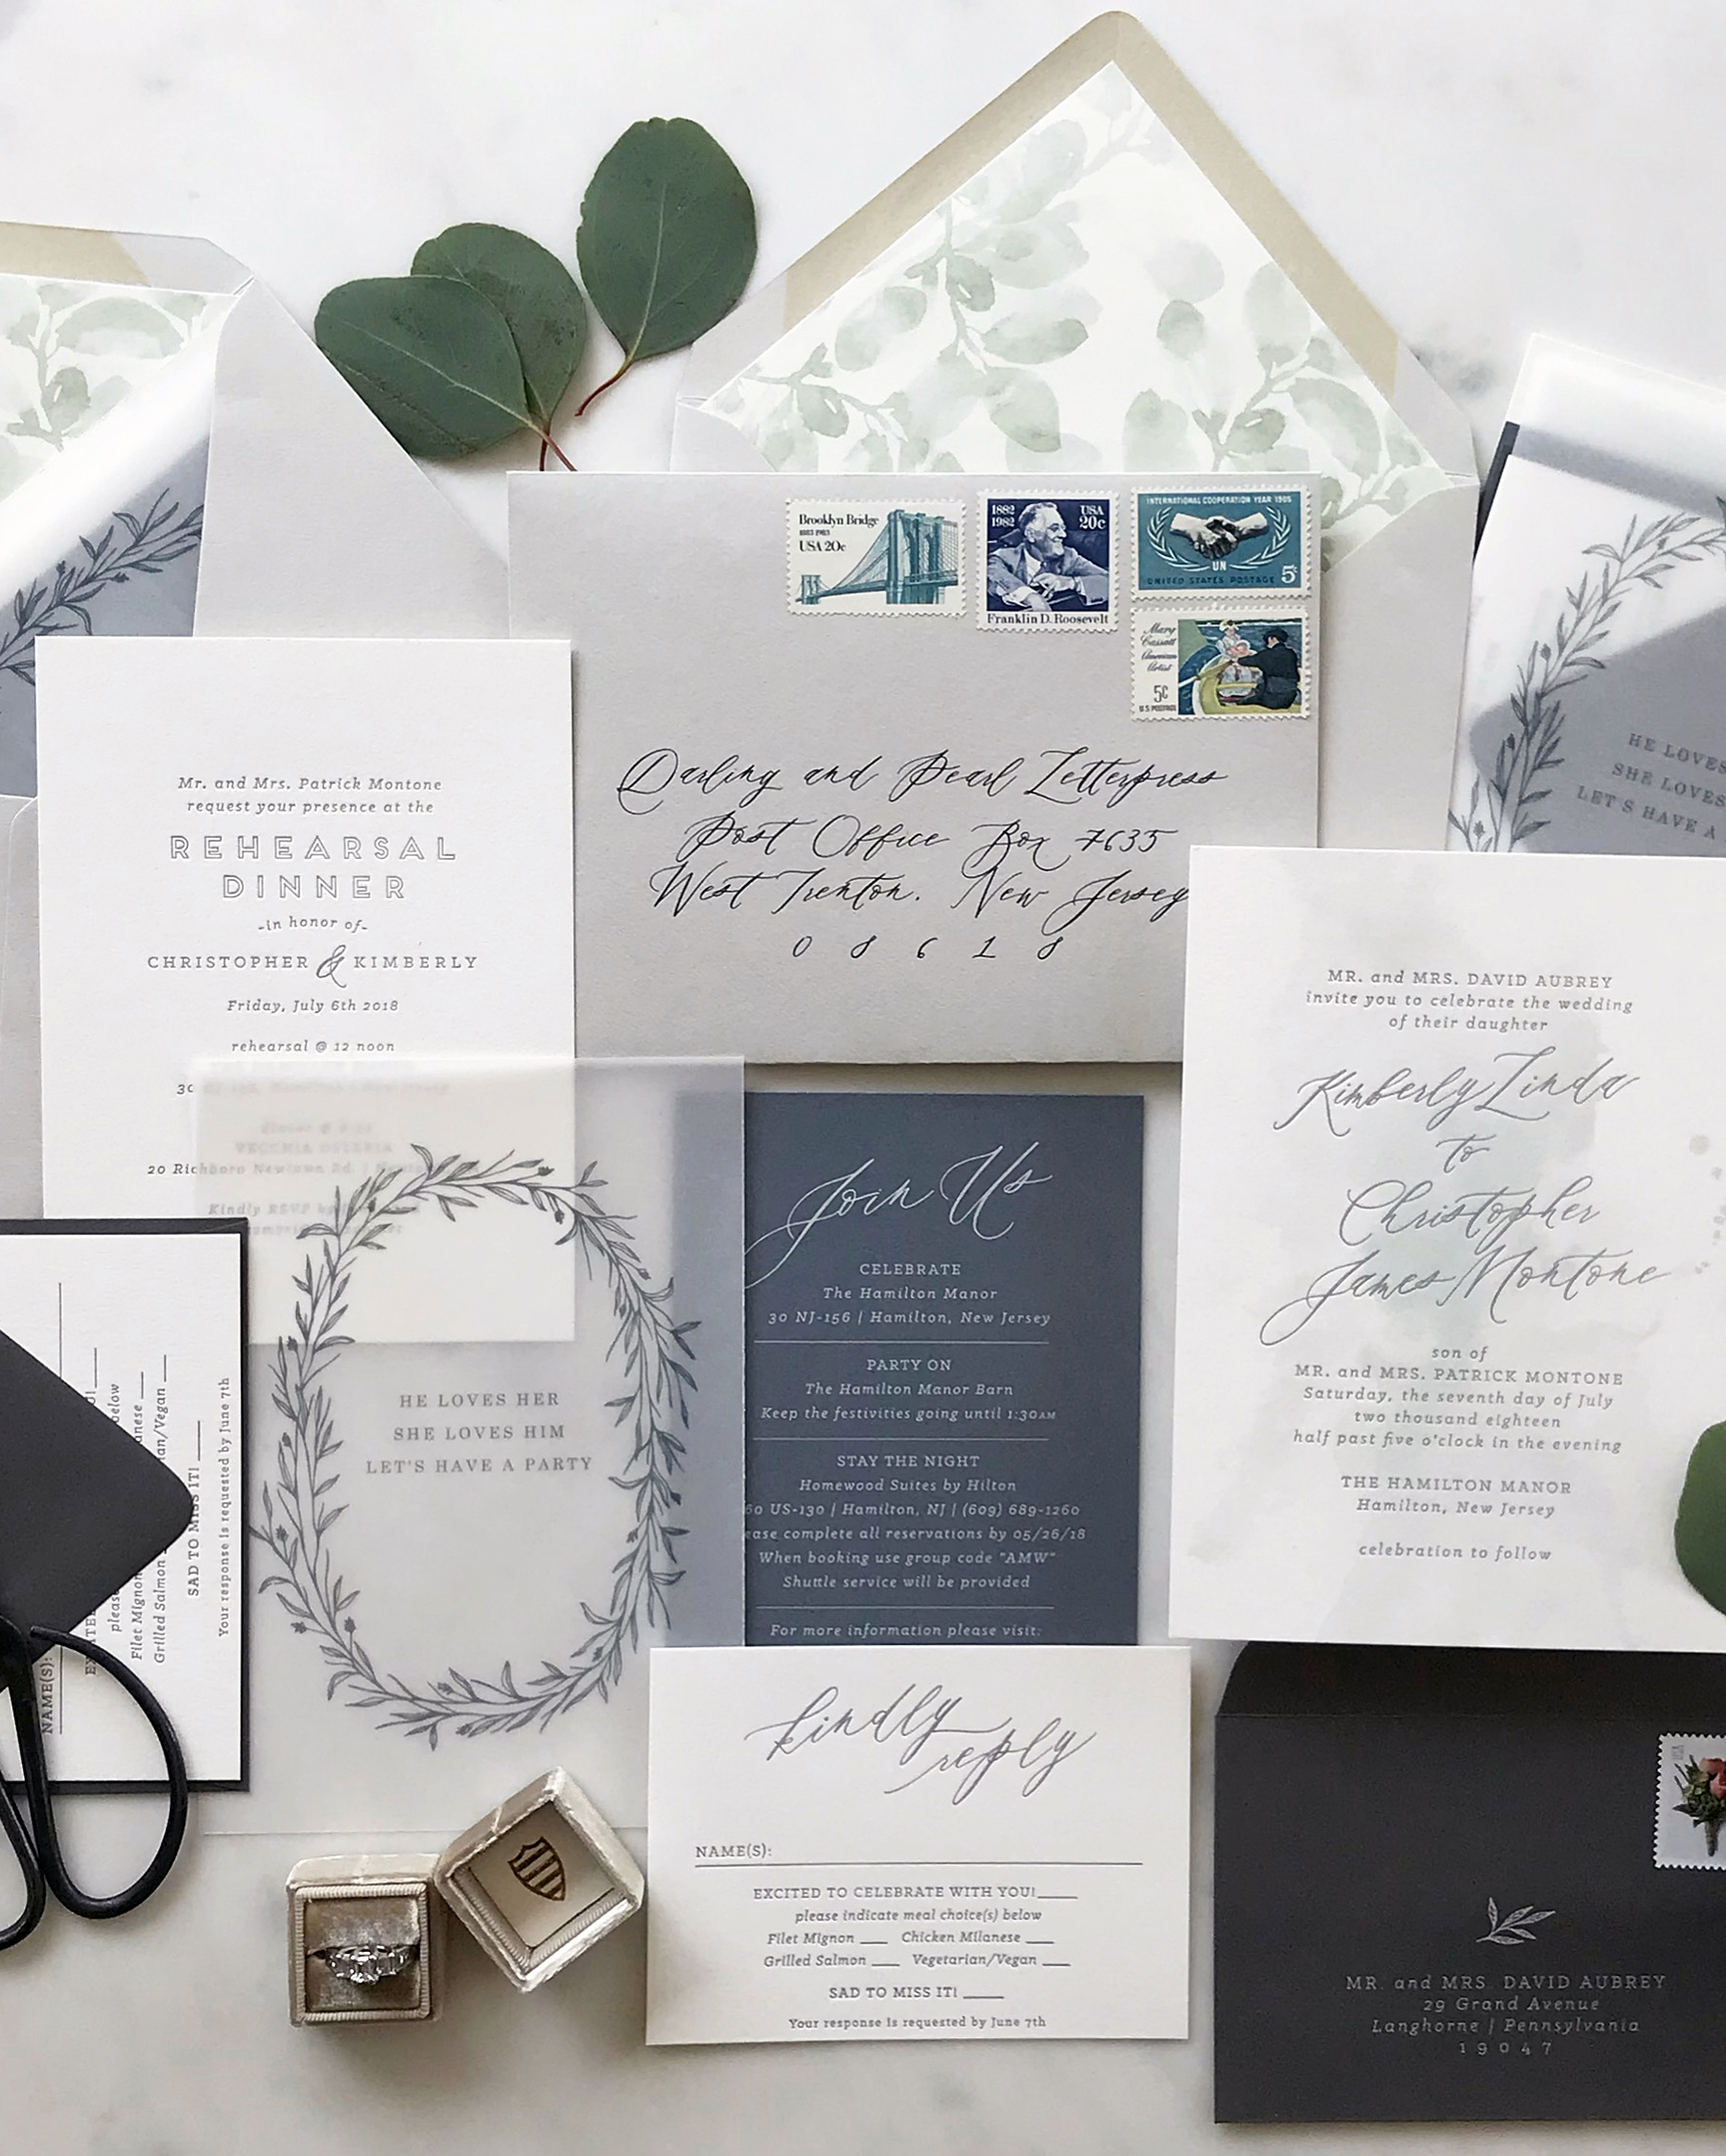 vellum overlay introduction on stationary suite